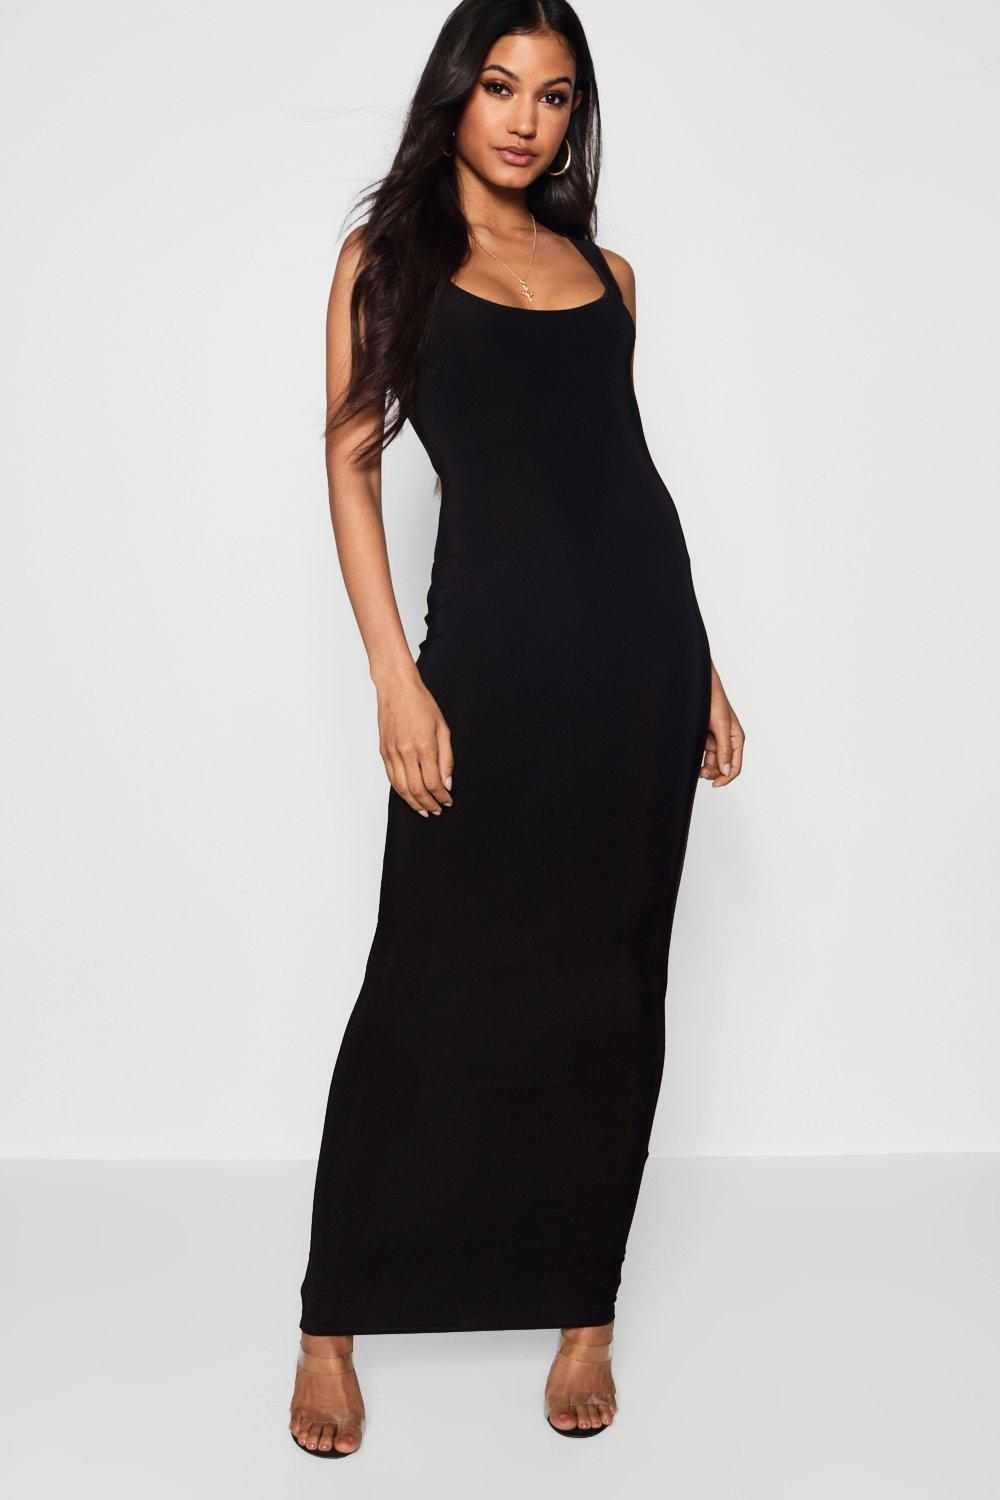 68bd9d4afe Slinky Square Neck Maxi Dress. Hover to zoom